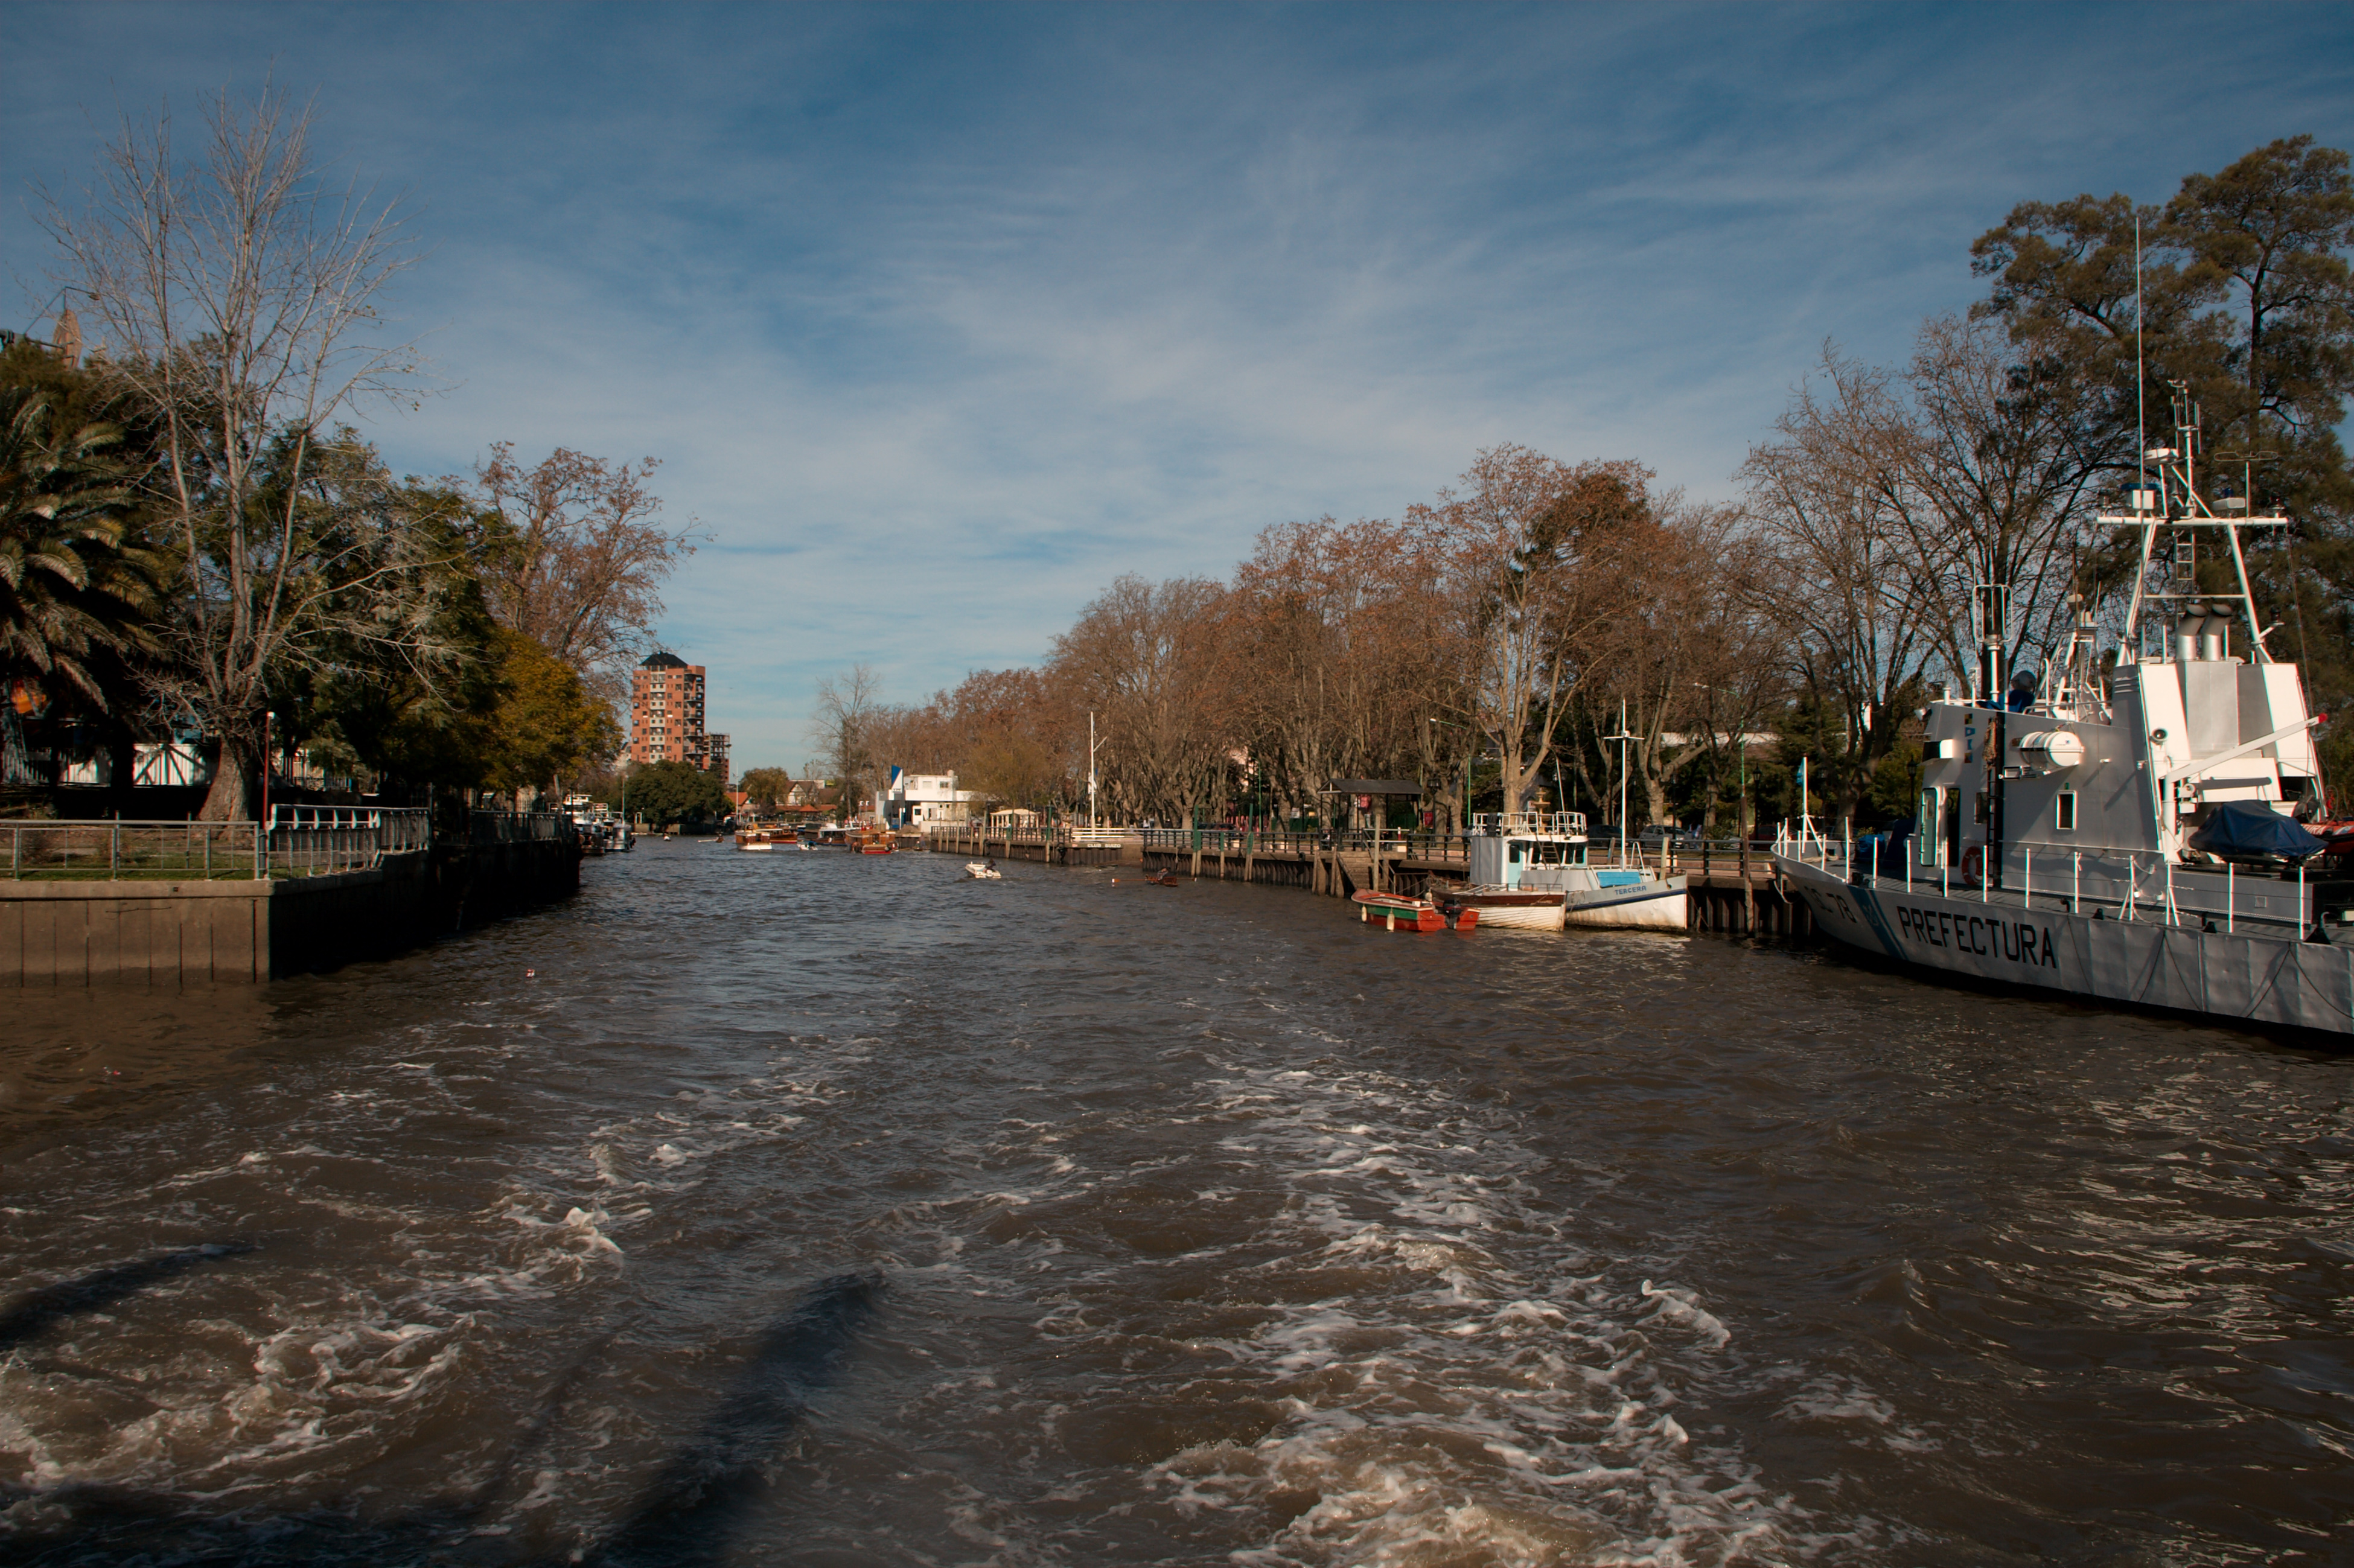 Depart the city for views of Tigre City on the Parana River Delta